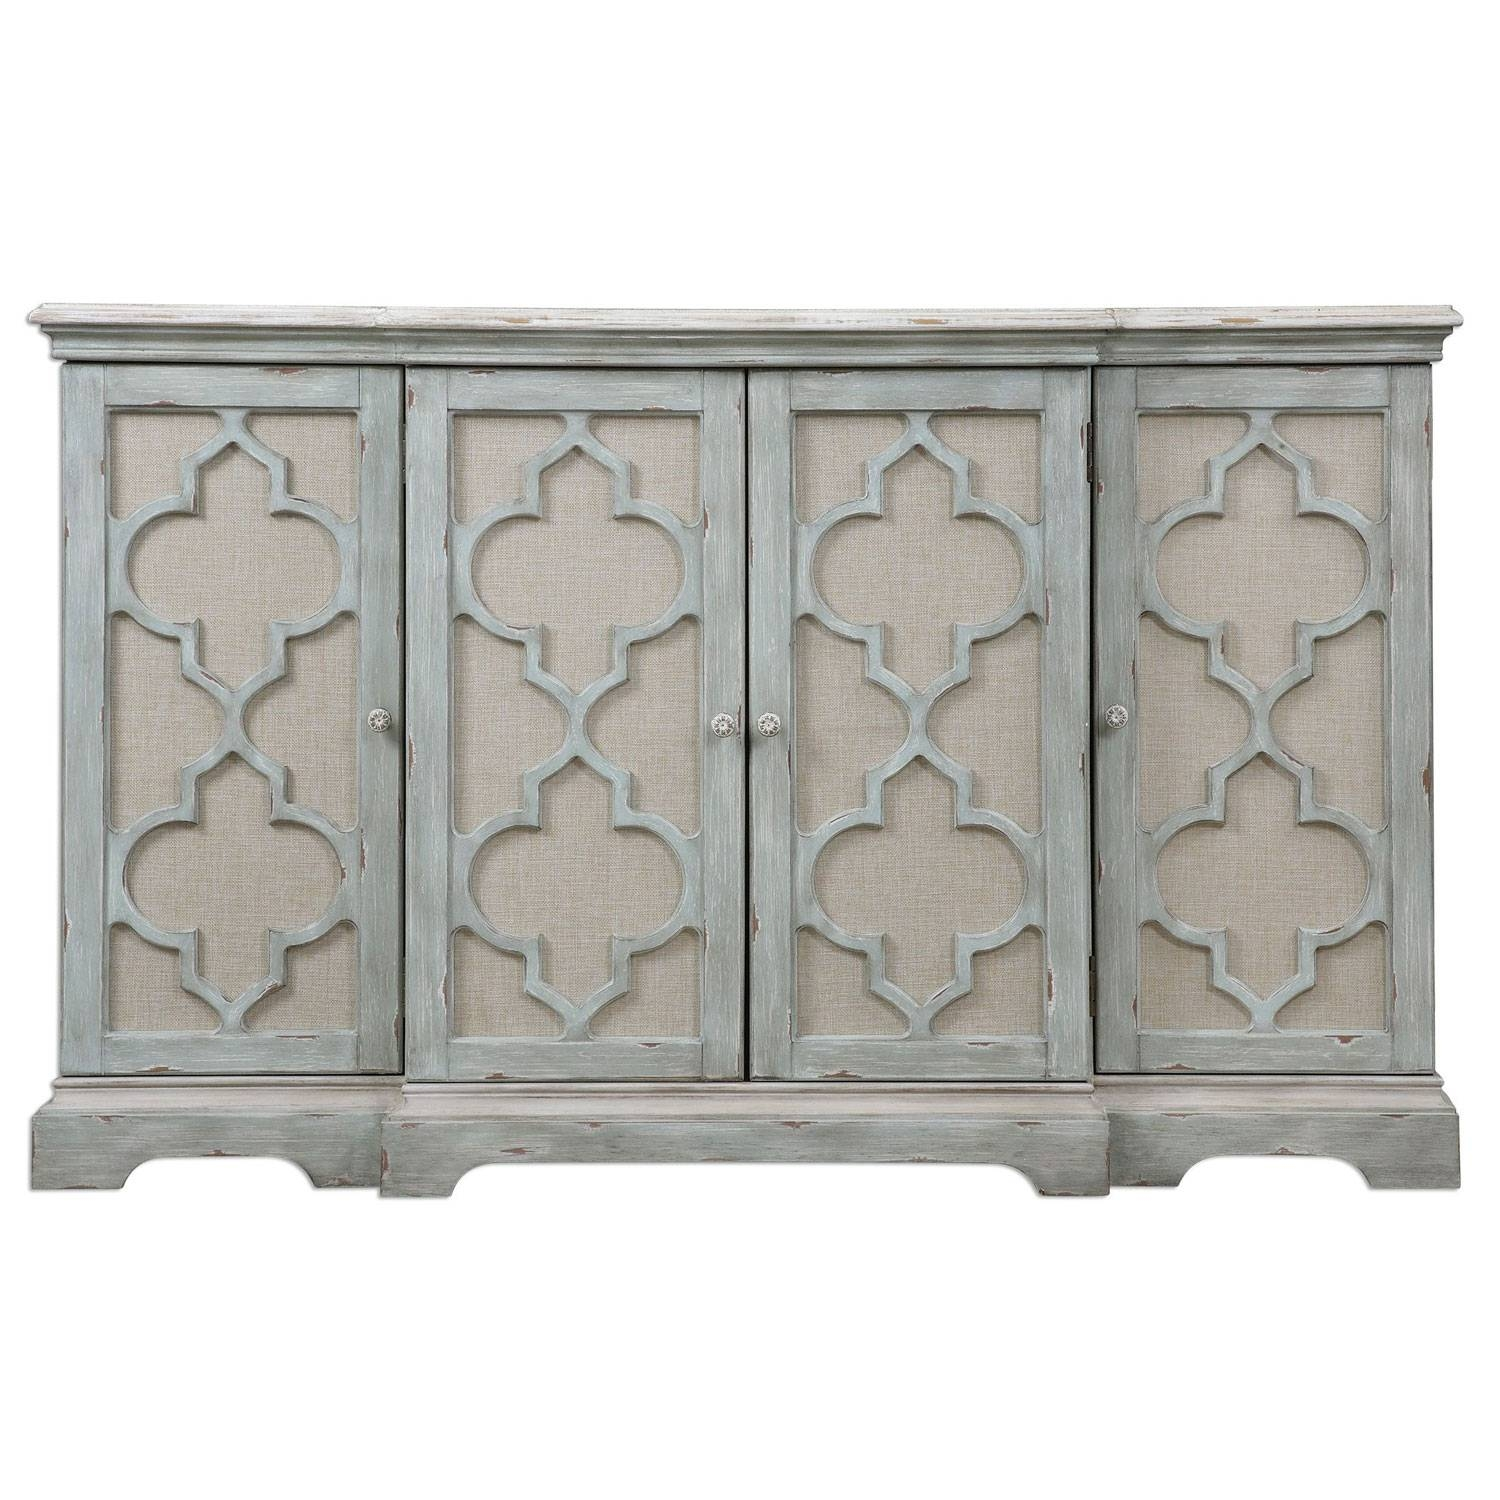 Accent Cabinets & Chests | Wooden Storage For The Home On Sale regarding Shallow Sideboard Cabinets (Image 1 of 30)